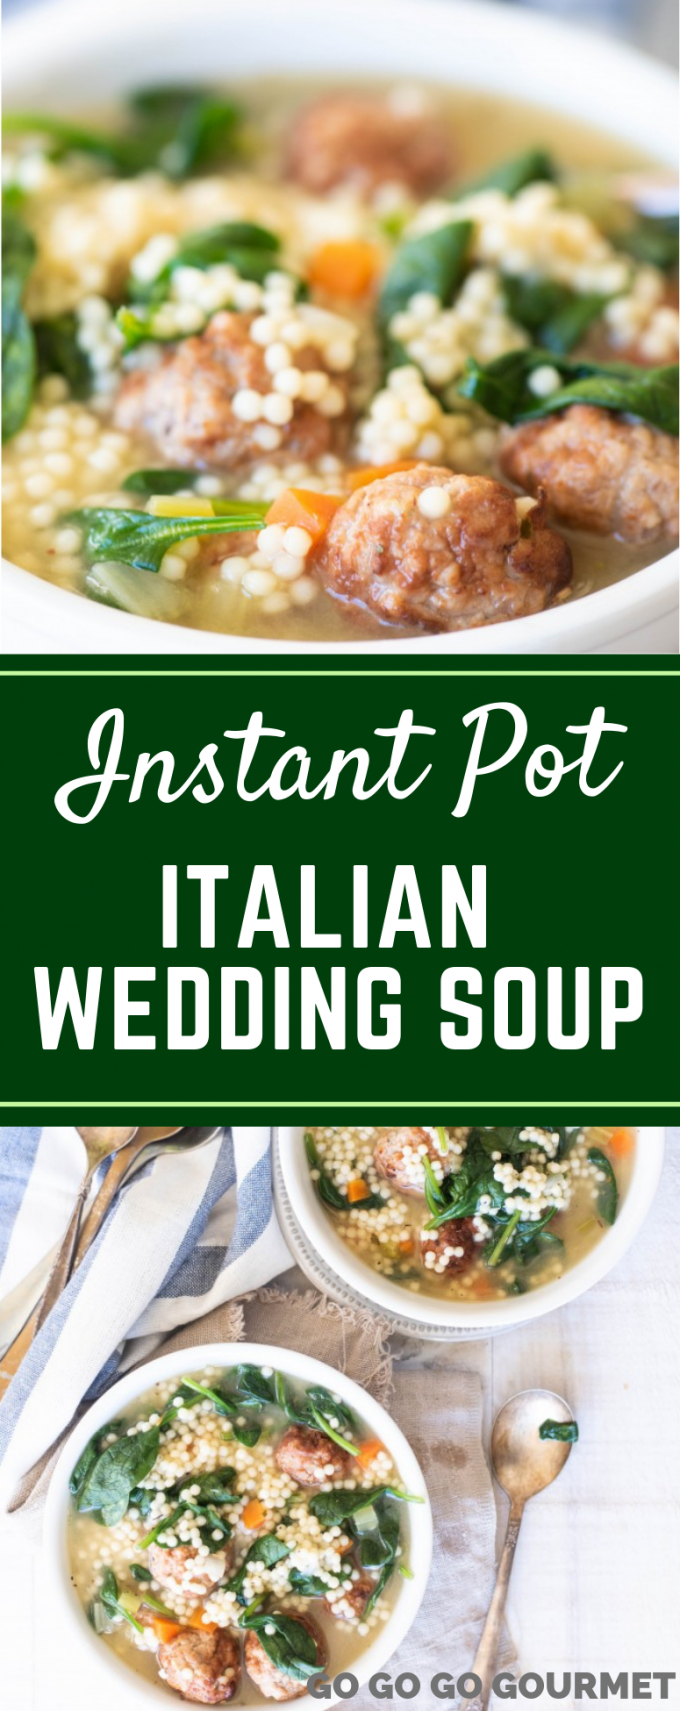 This Instant Pot Italian Wedding Soup is one of the best soup recipes! Made super easy with frozen meatballs, it's a great way to get dinner on the table fast! #gogogogourmet #instantpotitalianweddingsoup #instantpotsouprecipes #easyinstantpotrecipes via @gogogogourmet